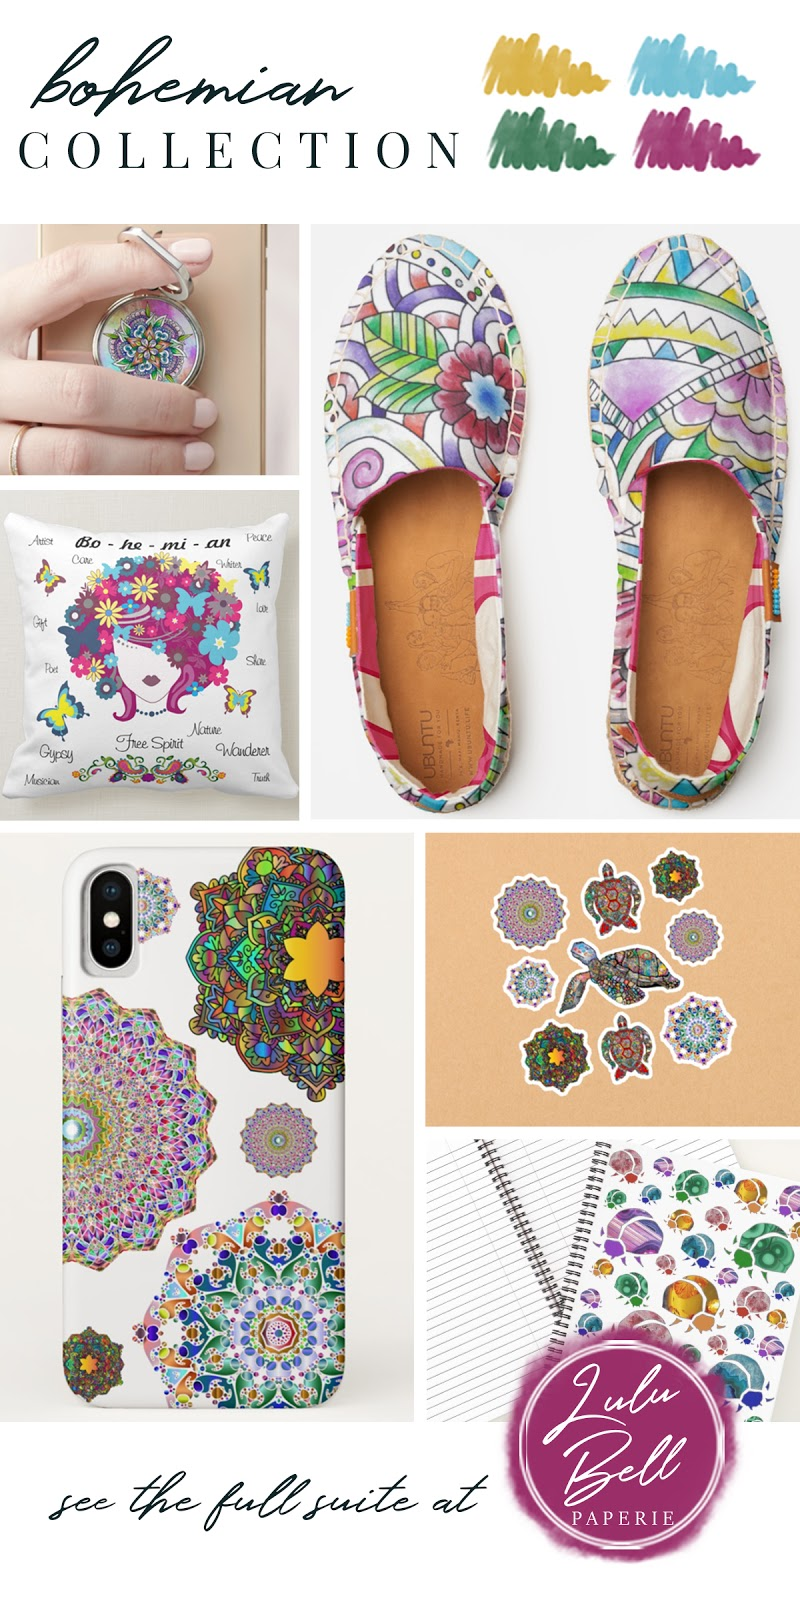 Bohemian Rainbow Home & Gifts Collection - Phone Ring Stand , Espadrilles Shoes, Throw Pillow, Mandala Phone Case, Turtle Stickers, and Beetle Bug Notebook